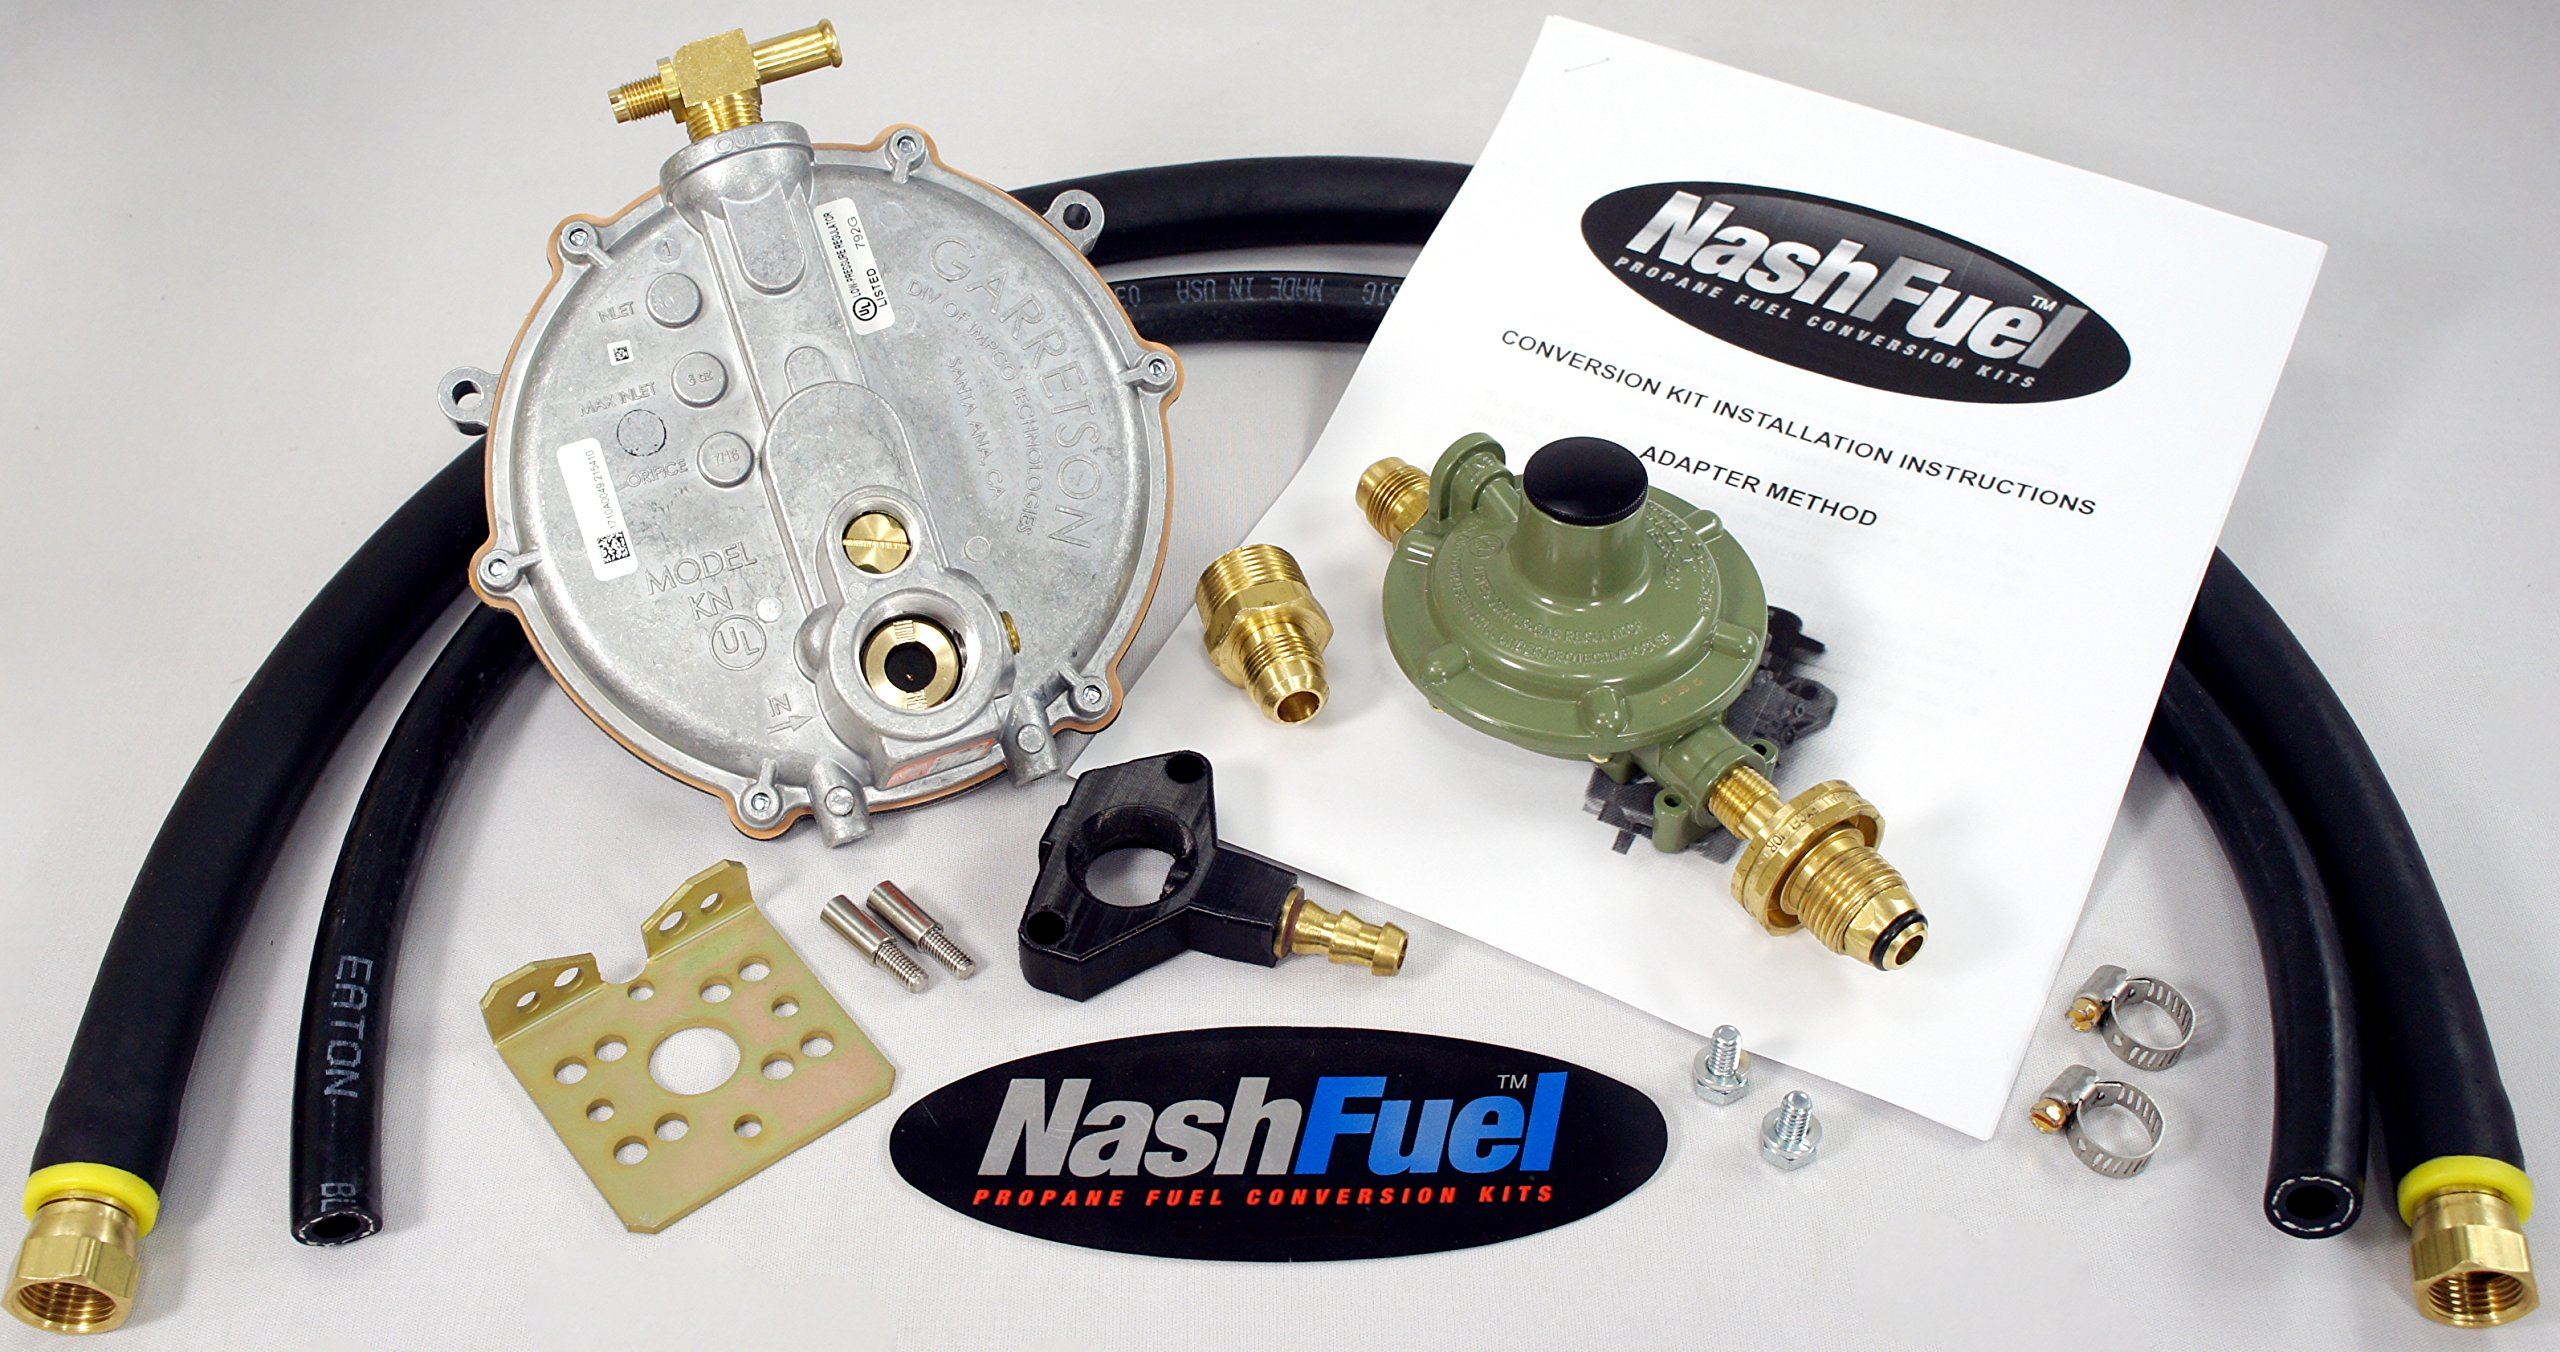 Predator 68530 8750w Propane/Natural Gas Tri-Fuel Conversion Kit by Nashfuel